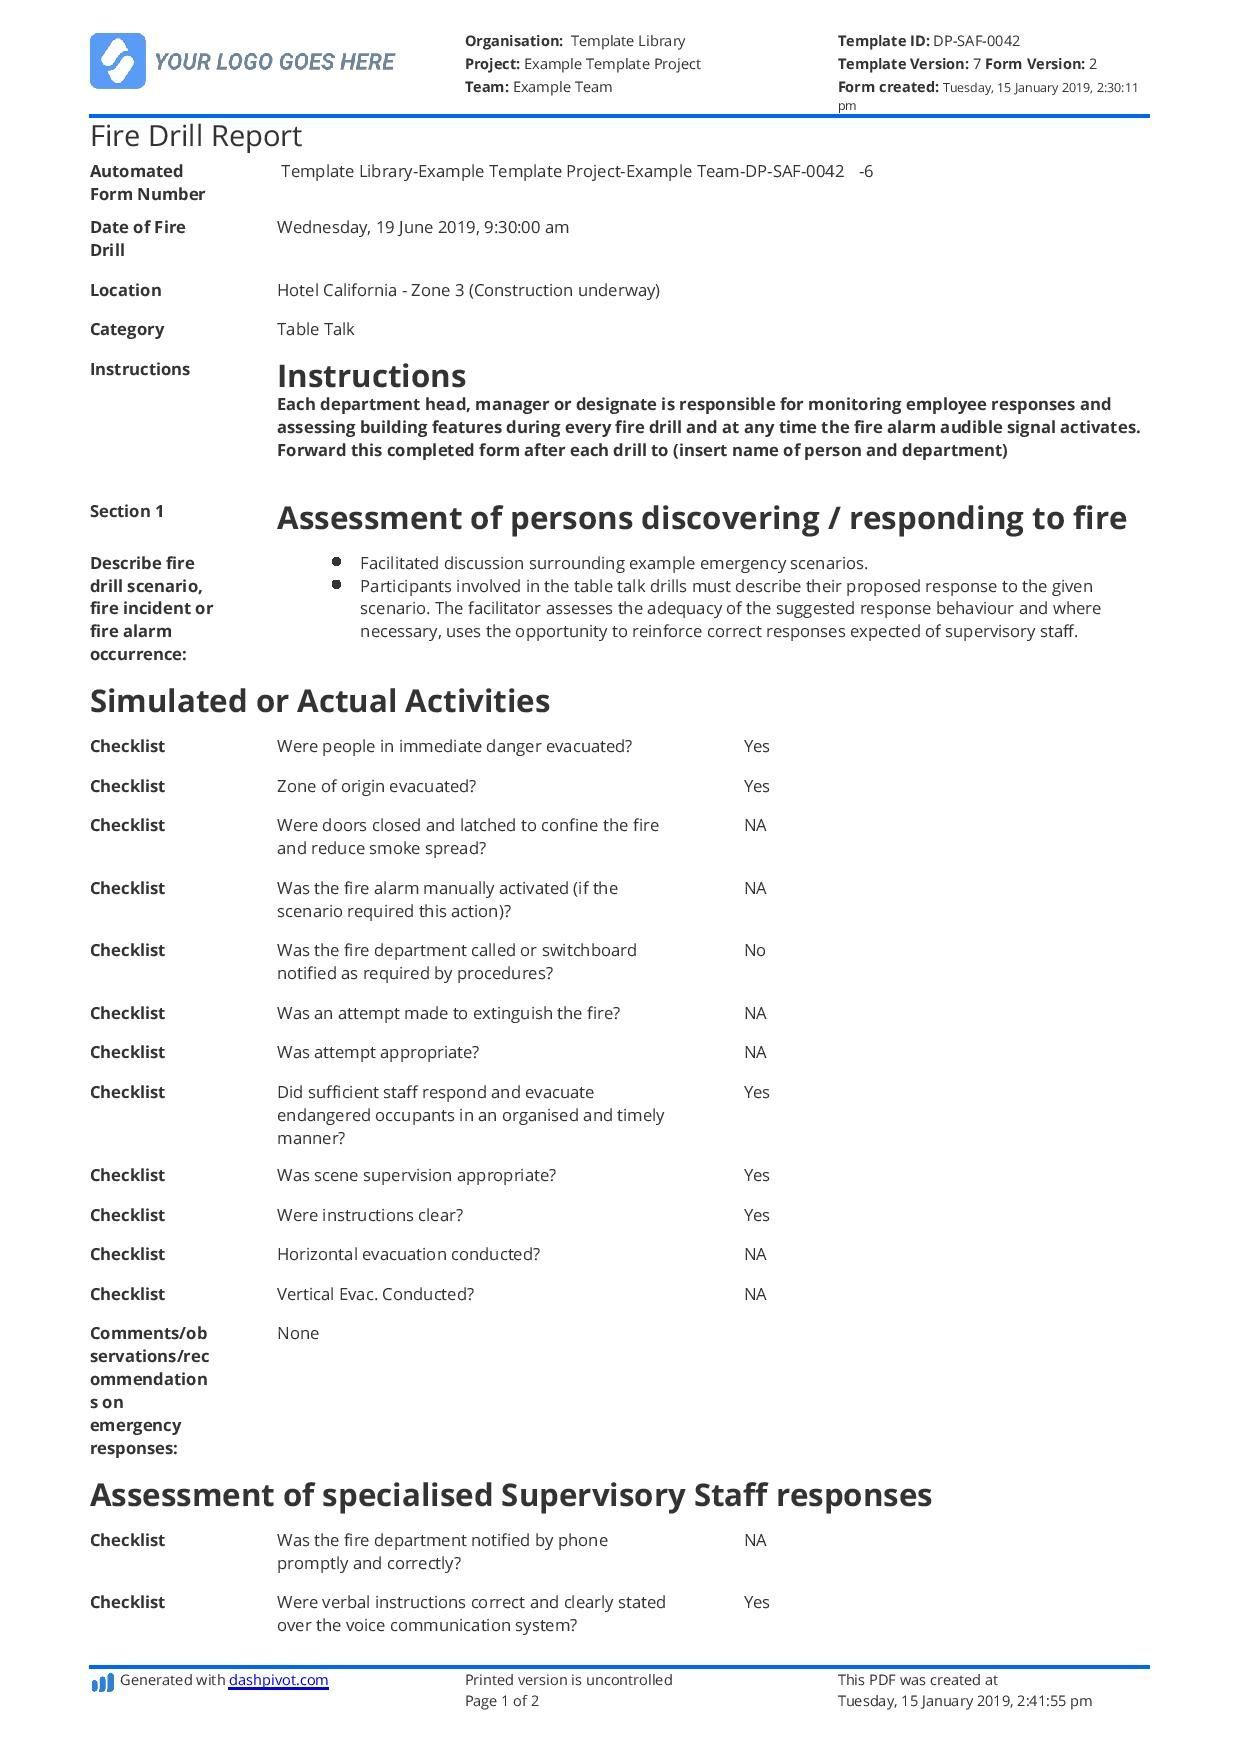 Free Fire Drill Report Template Use, Customise, Download